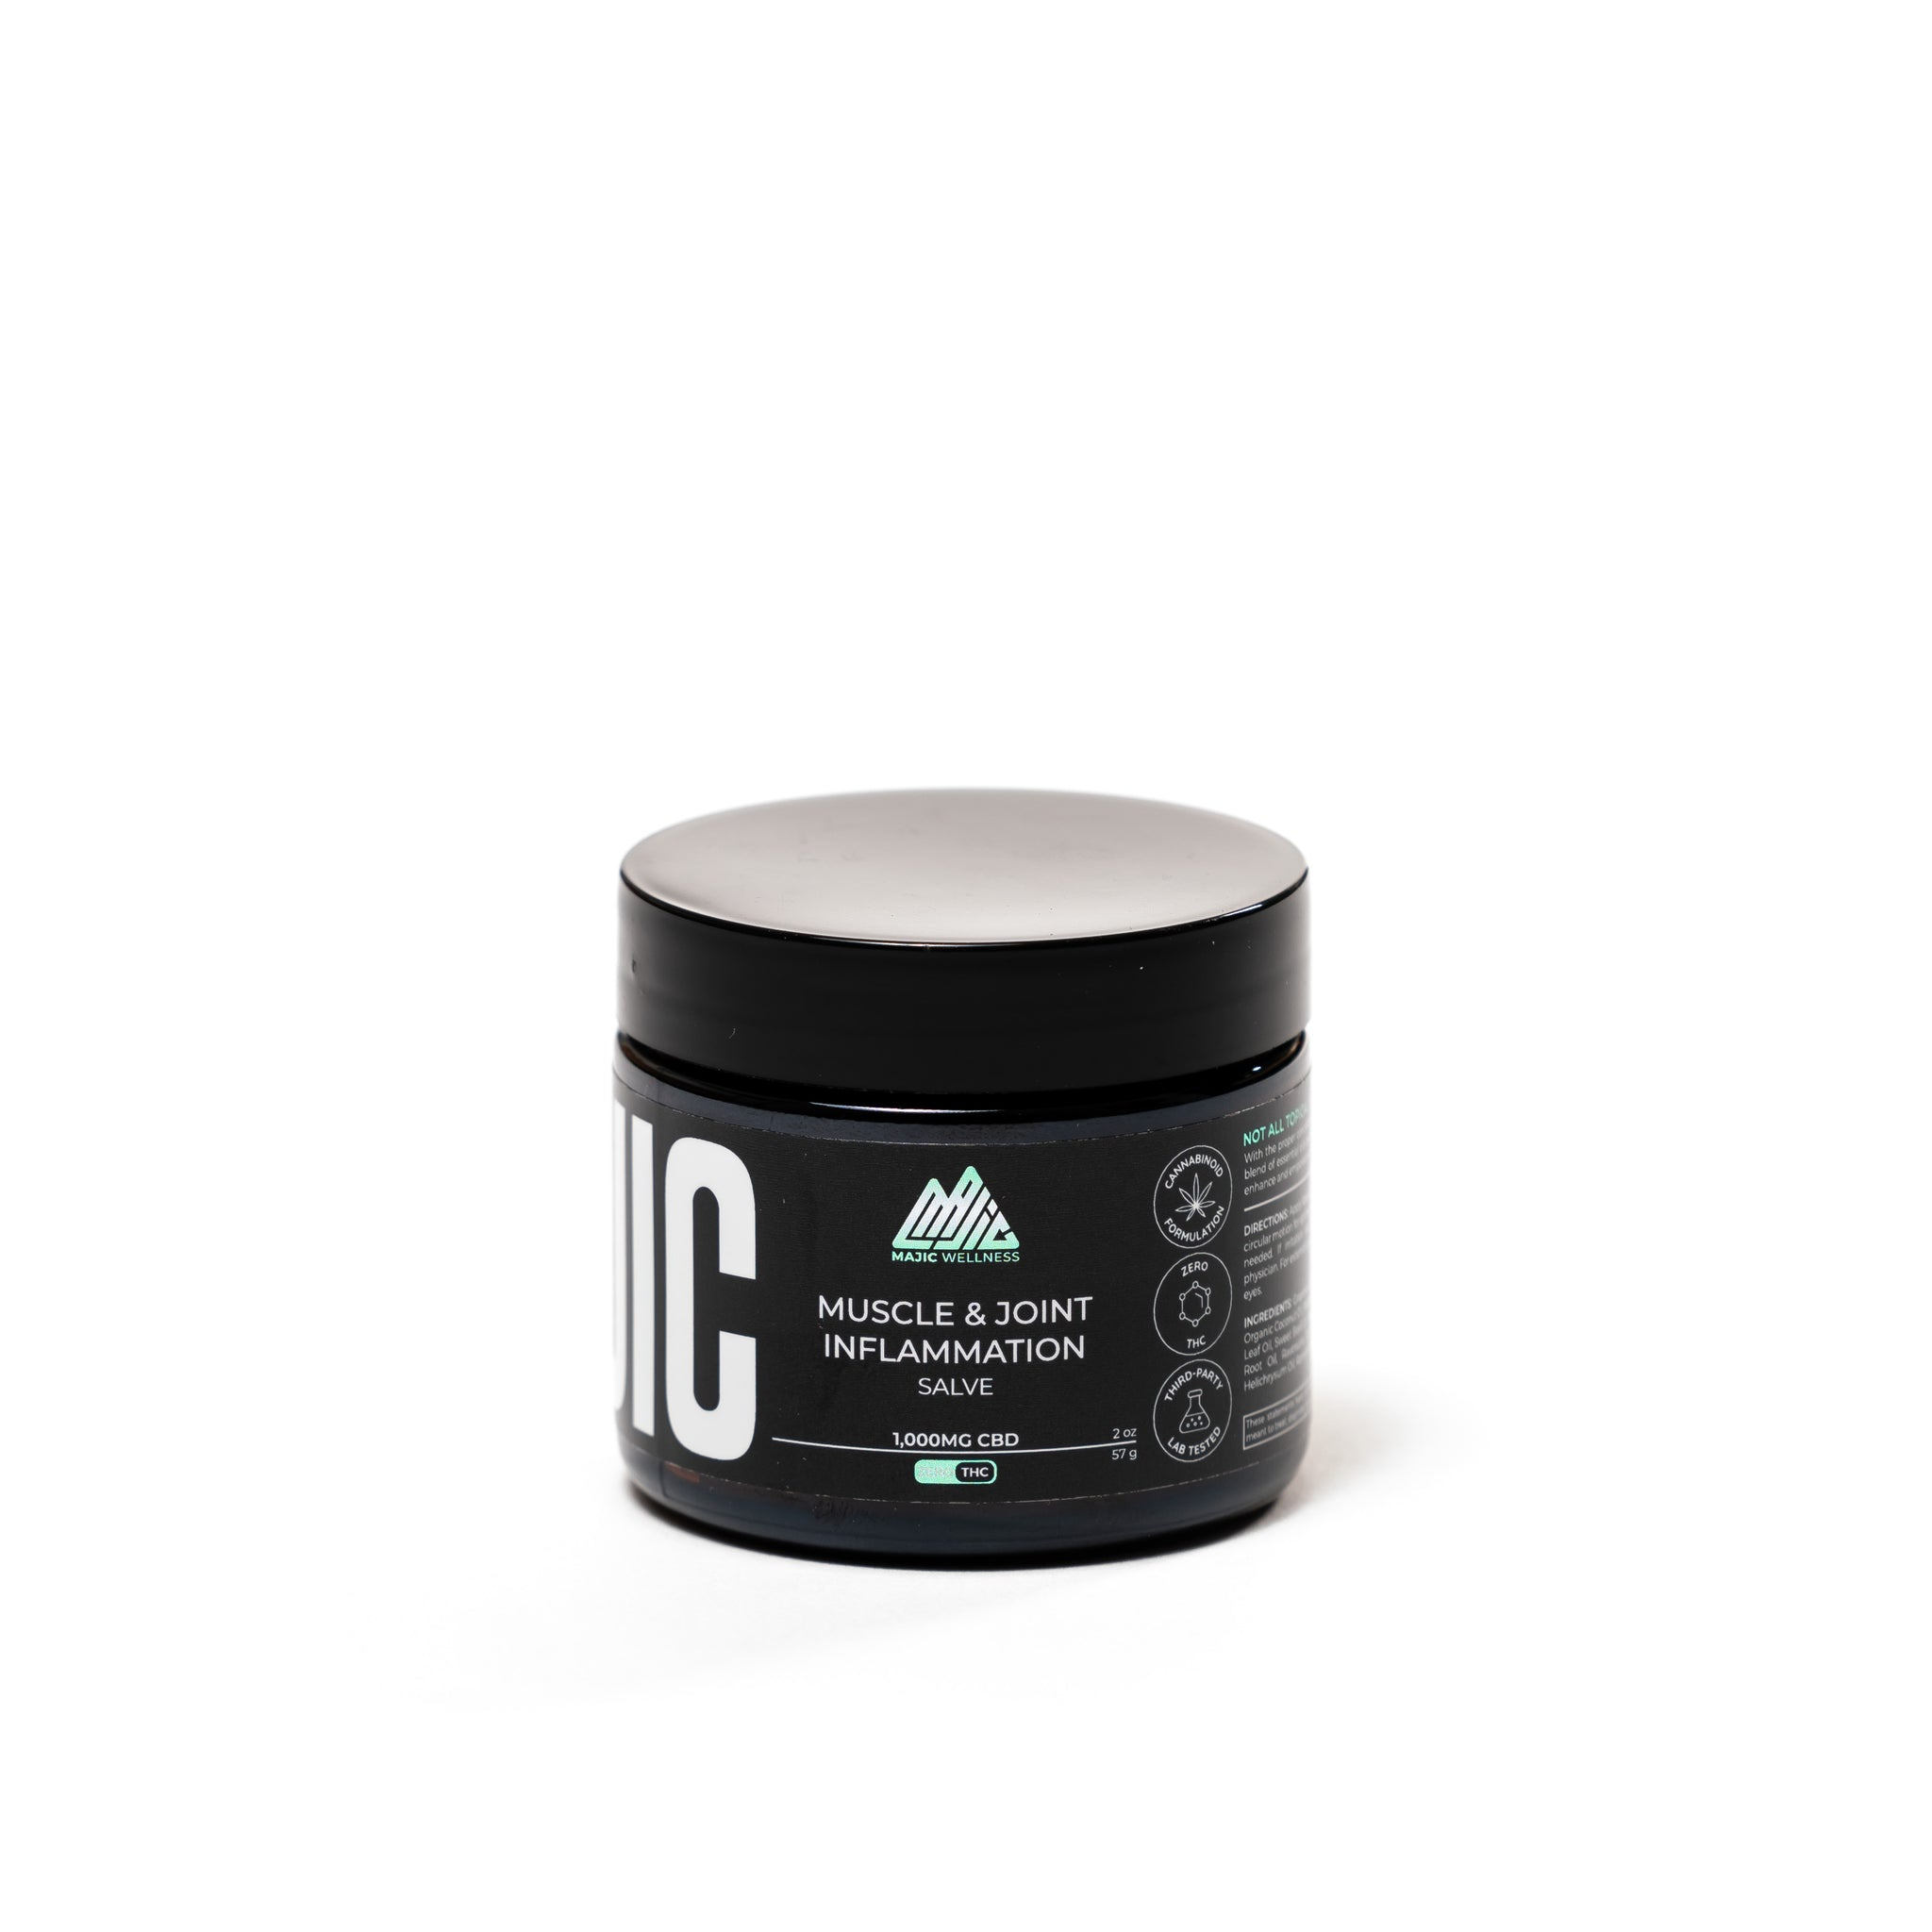 1000mg CBD Salve (2oz.) - Muscle and Joint Inflammation